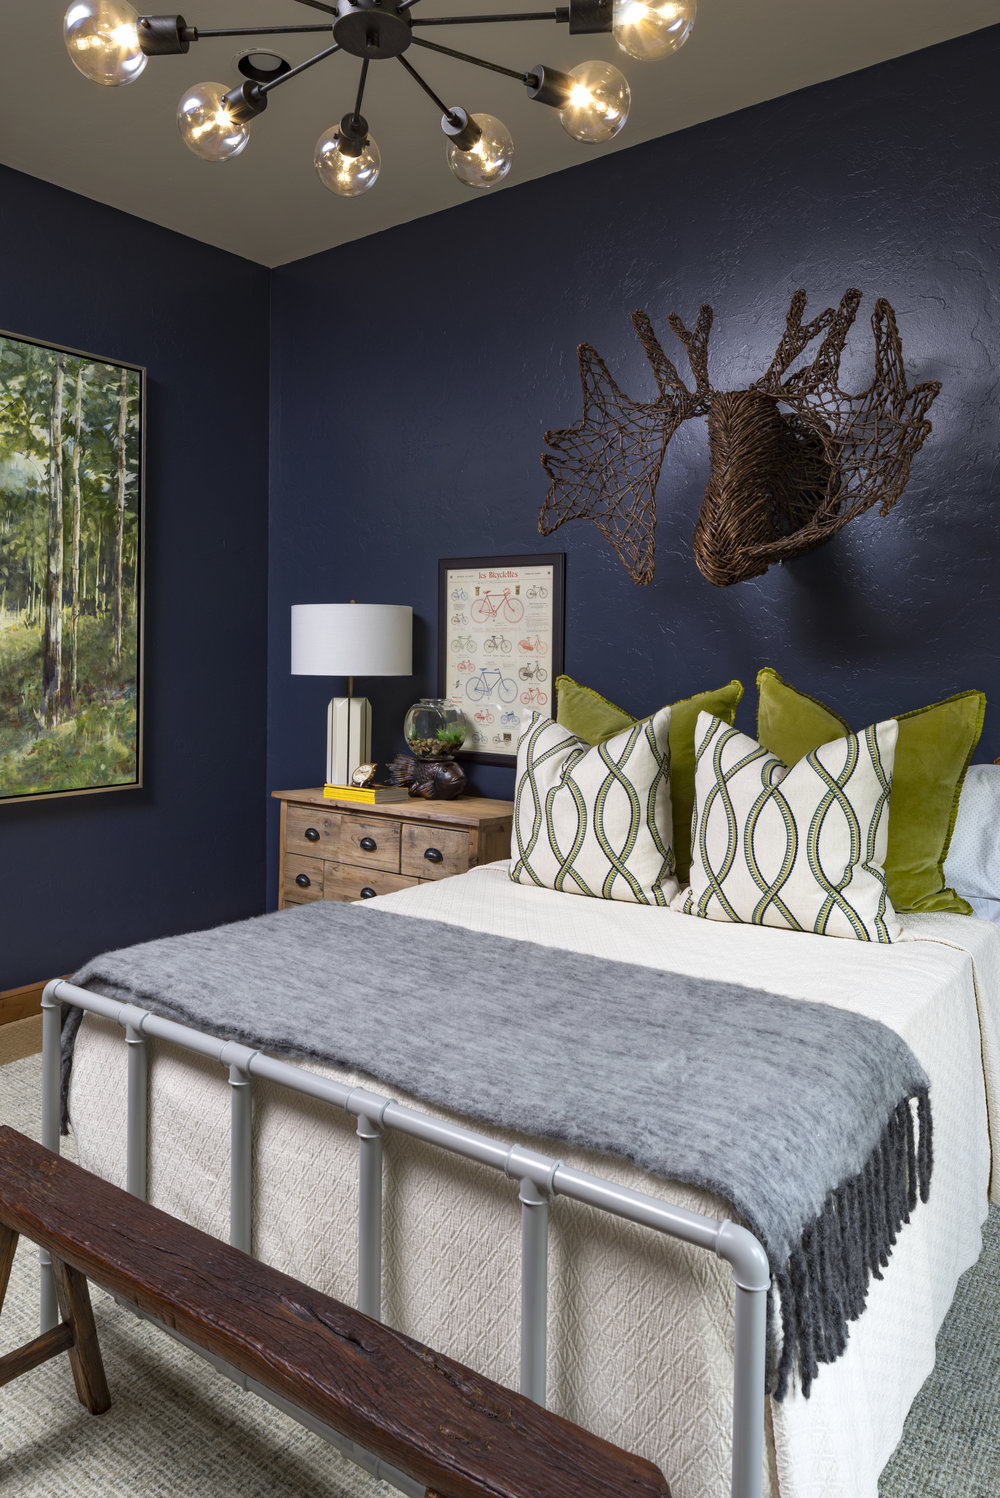 DesignerShowhouse_Bedroom_1.jpg